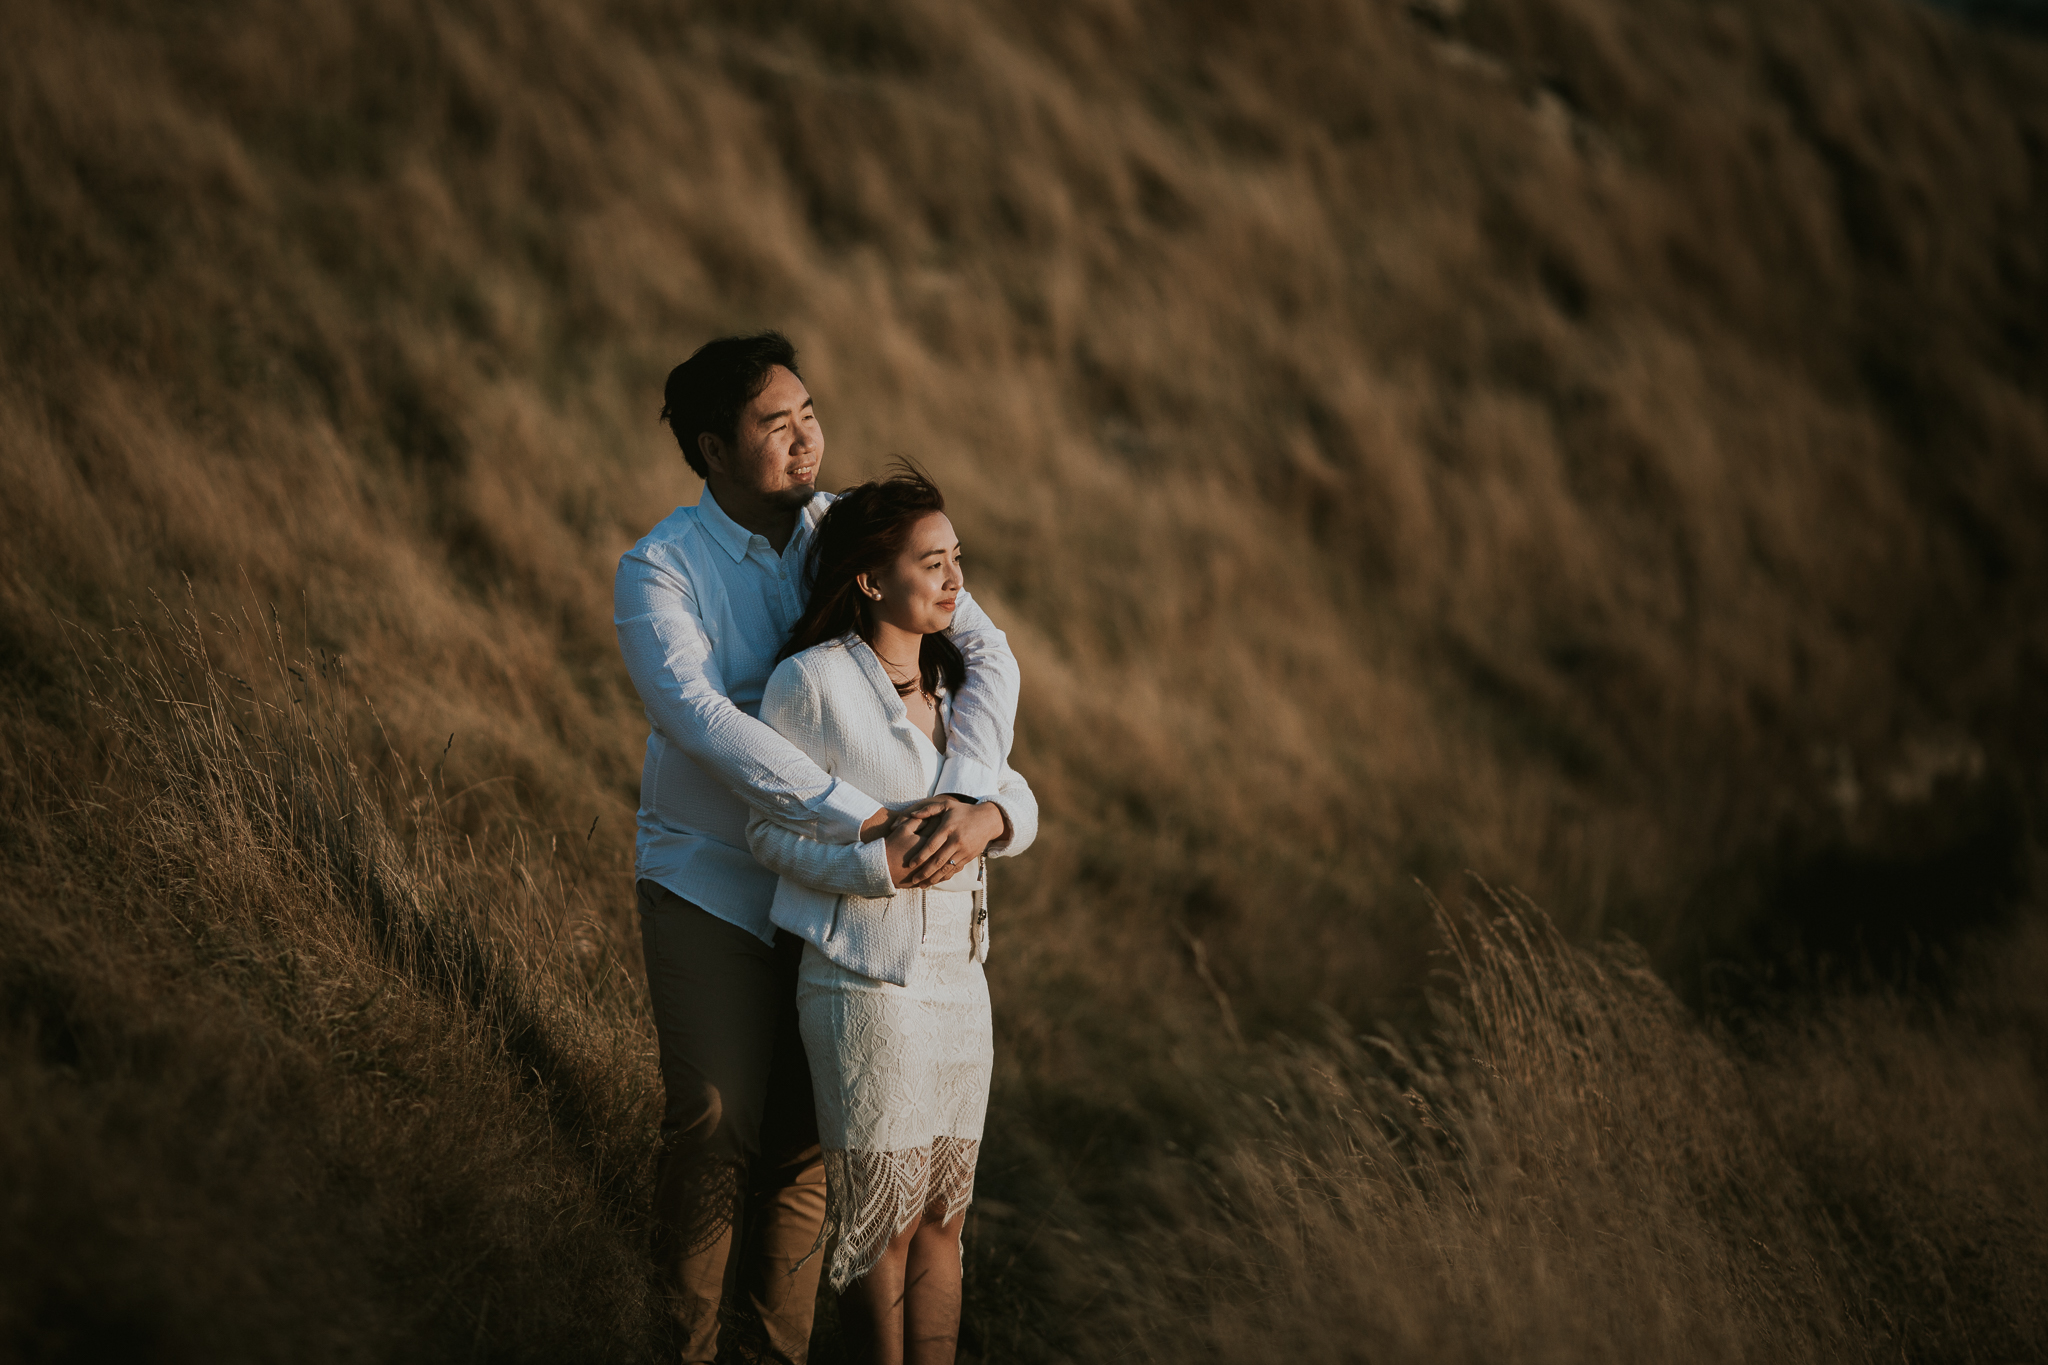 Wedding Photographers Hawkes Bay Te Mata Peak Engagement Shoot Sunset-2.jpg